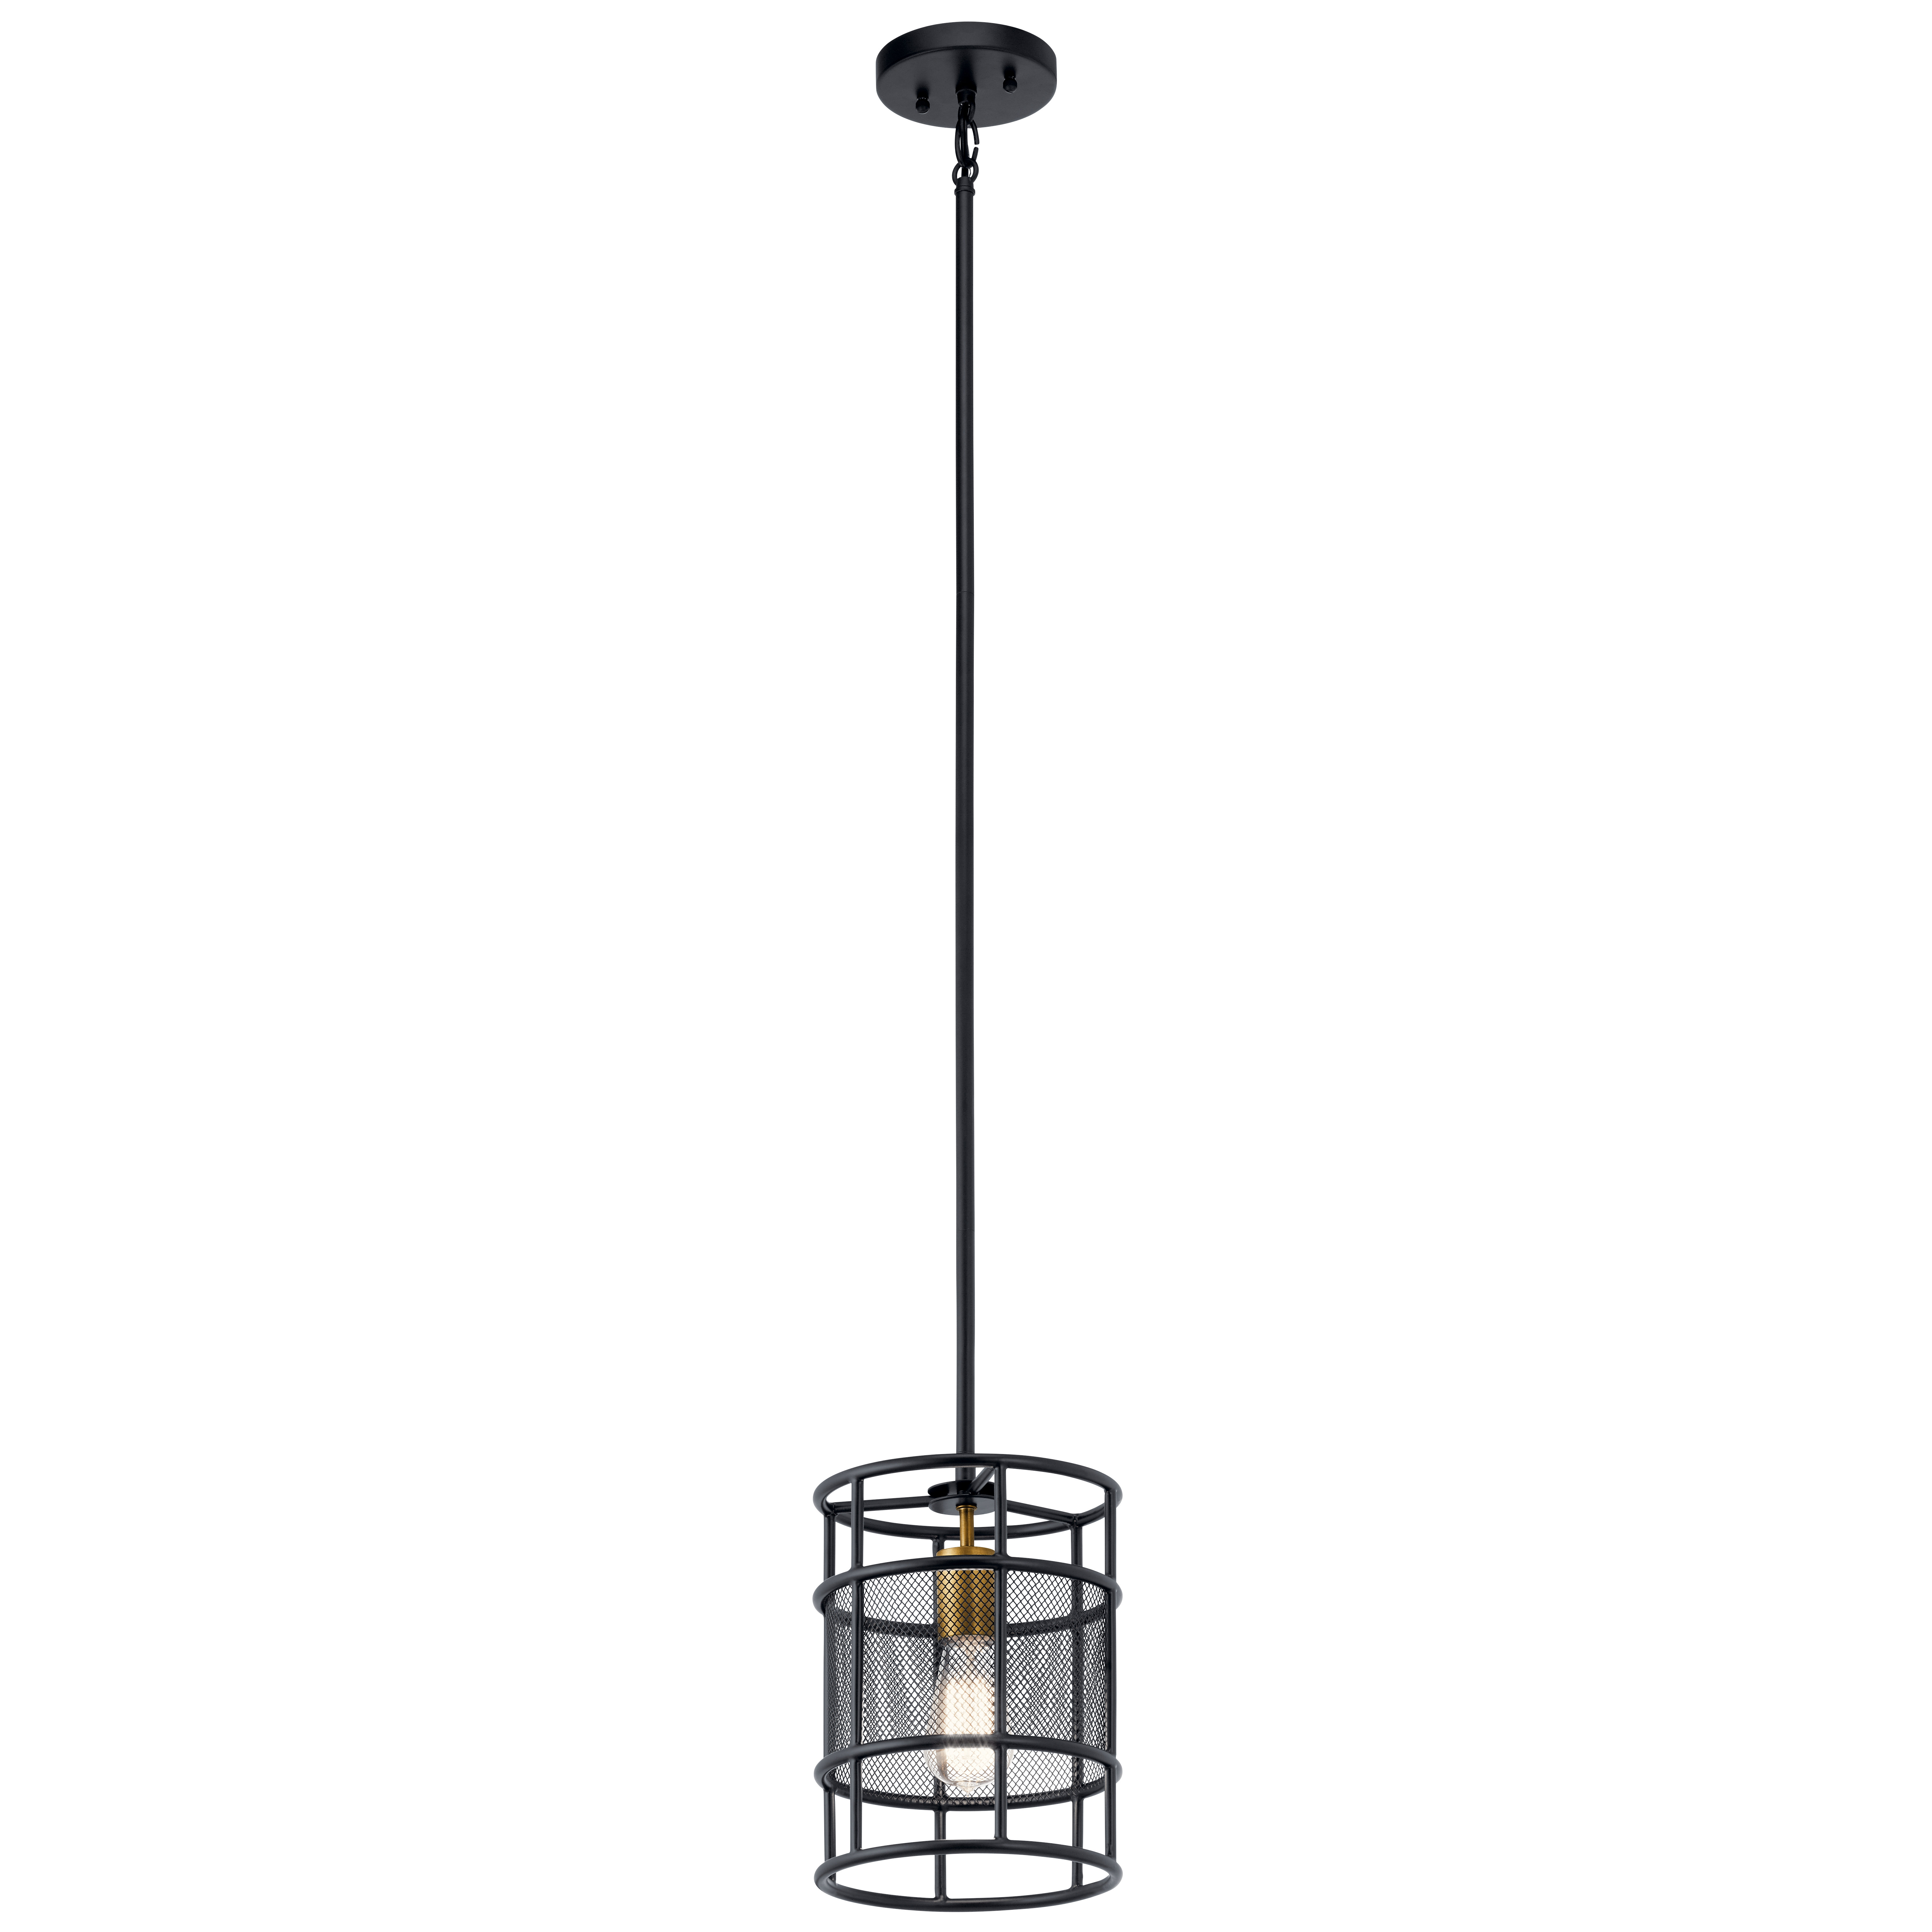 Sayers 1 Light Cylinder Pendant Within Barrons 1 Light Single Cylinder Pendants (View 13 of 30)